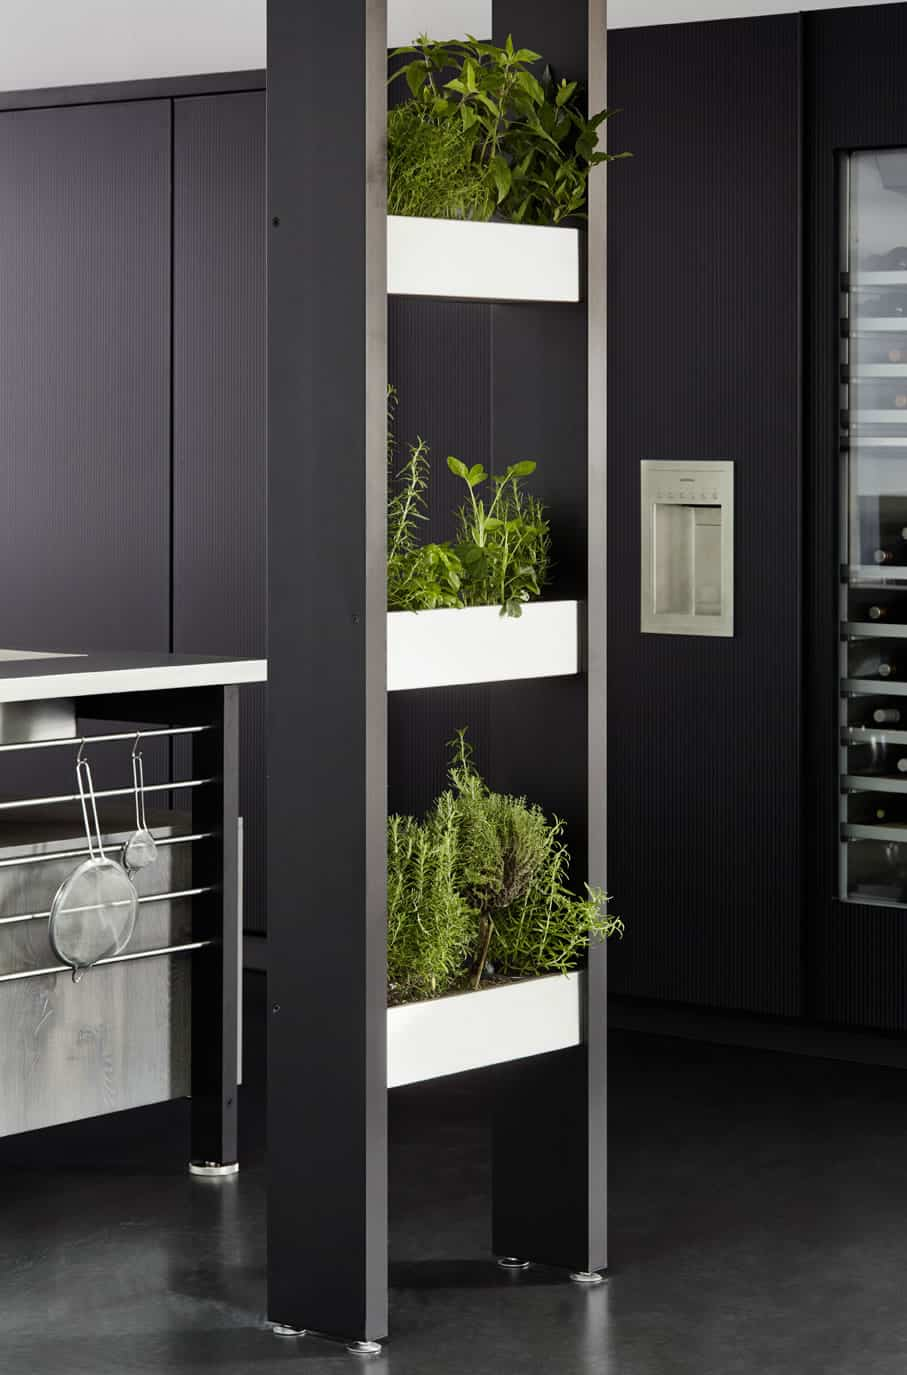 Works Ribbed glass turn units with Planter and Herb garden containers